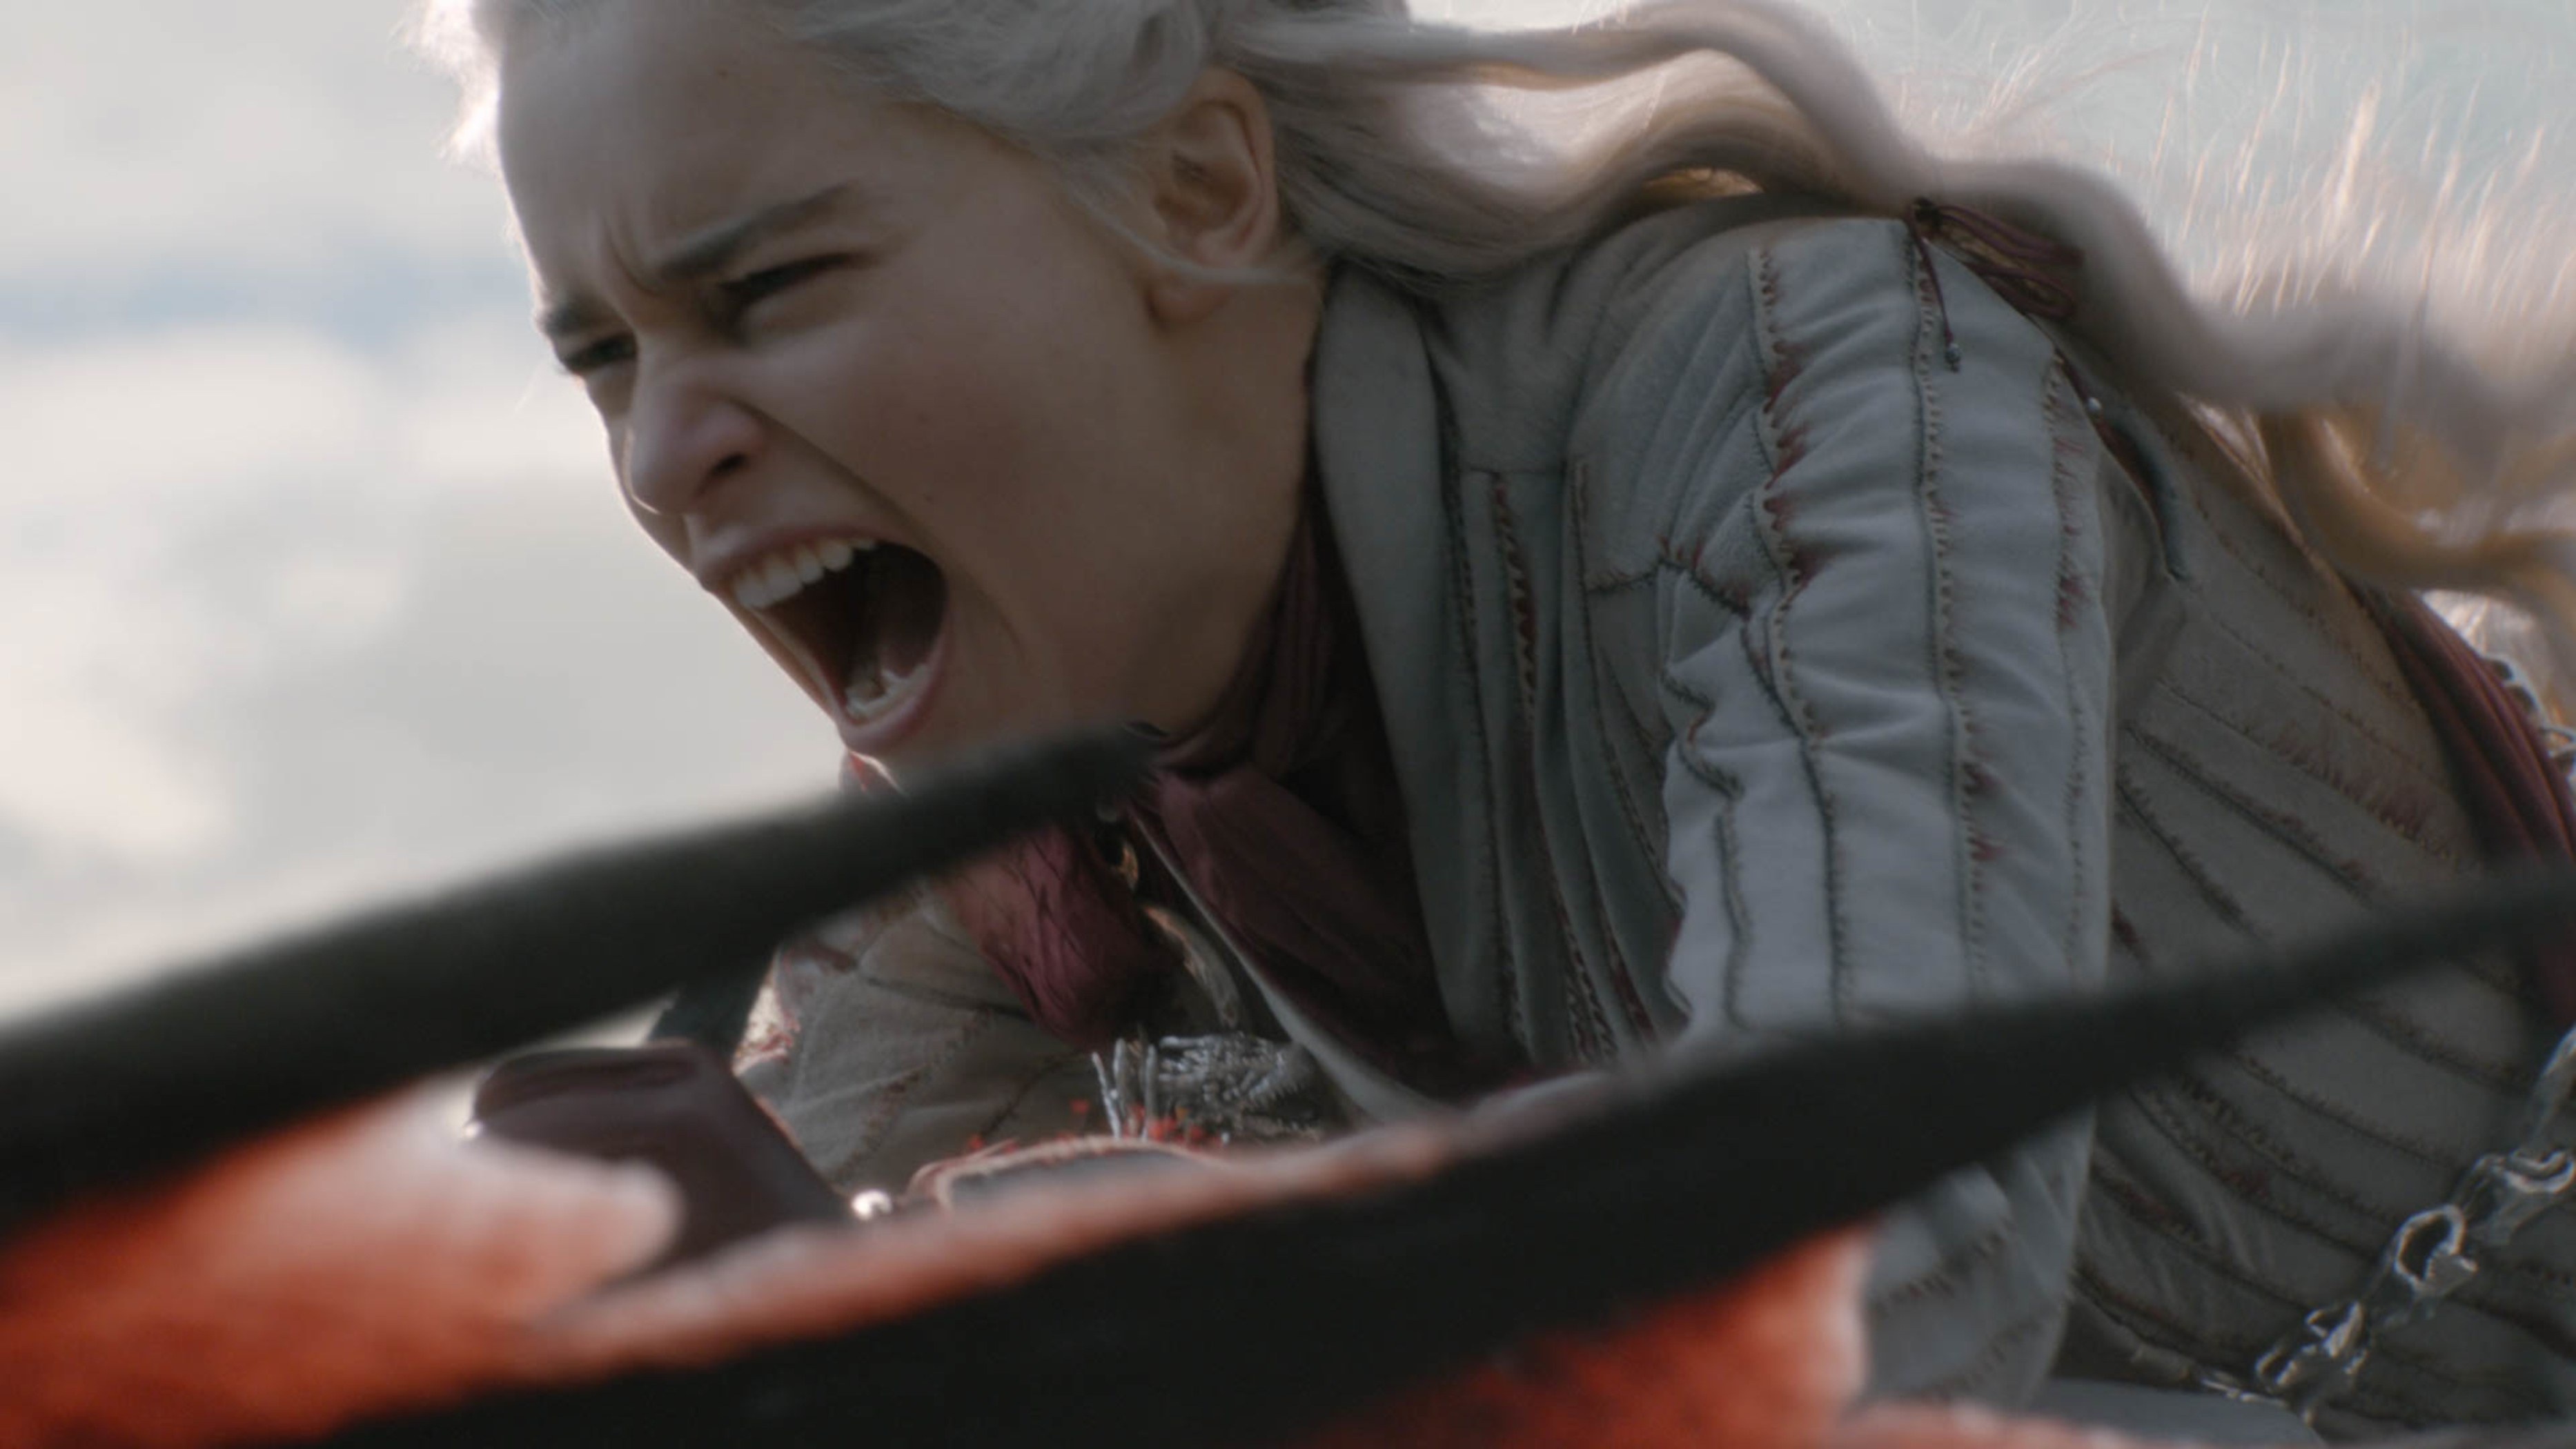 Game of Thrones 2019 Season 8 Episode 4 Quality 1080P Free